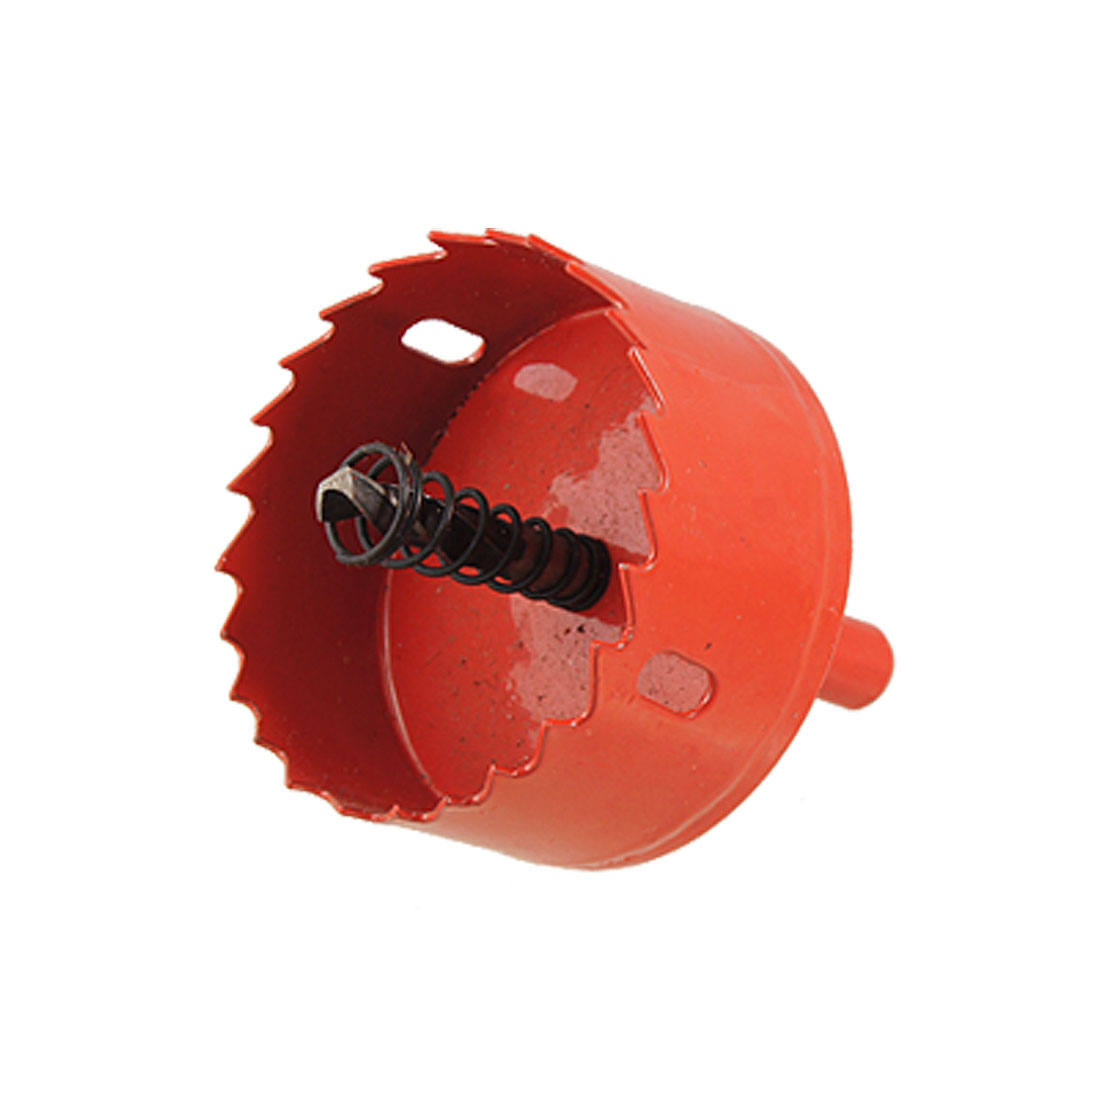 Wood Iron Cutting 6mm Drill Bit 60mm Diameter Bimetal Hole Saw Red